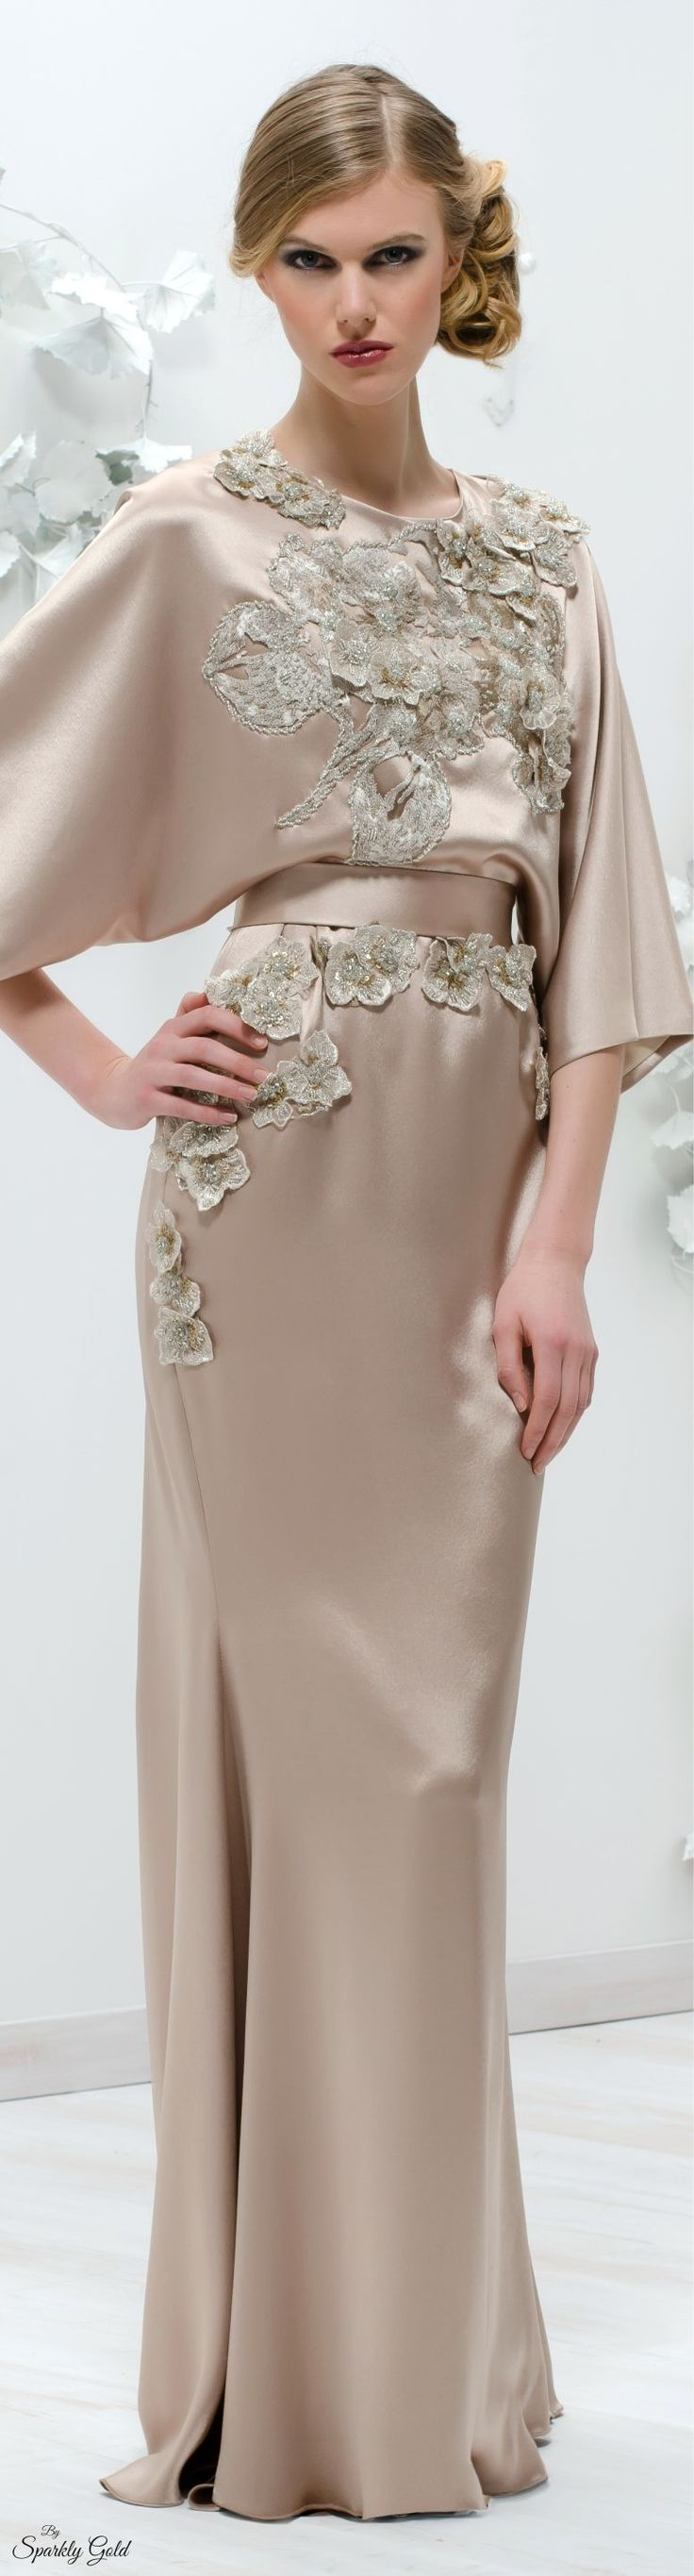 The gown boutique.  Blush pink Gown Isabel Sanchis